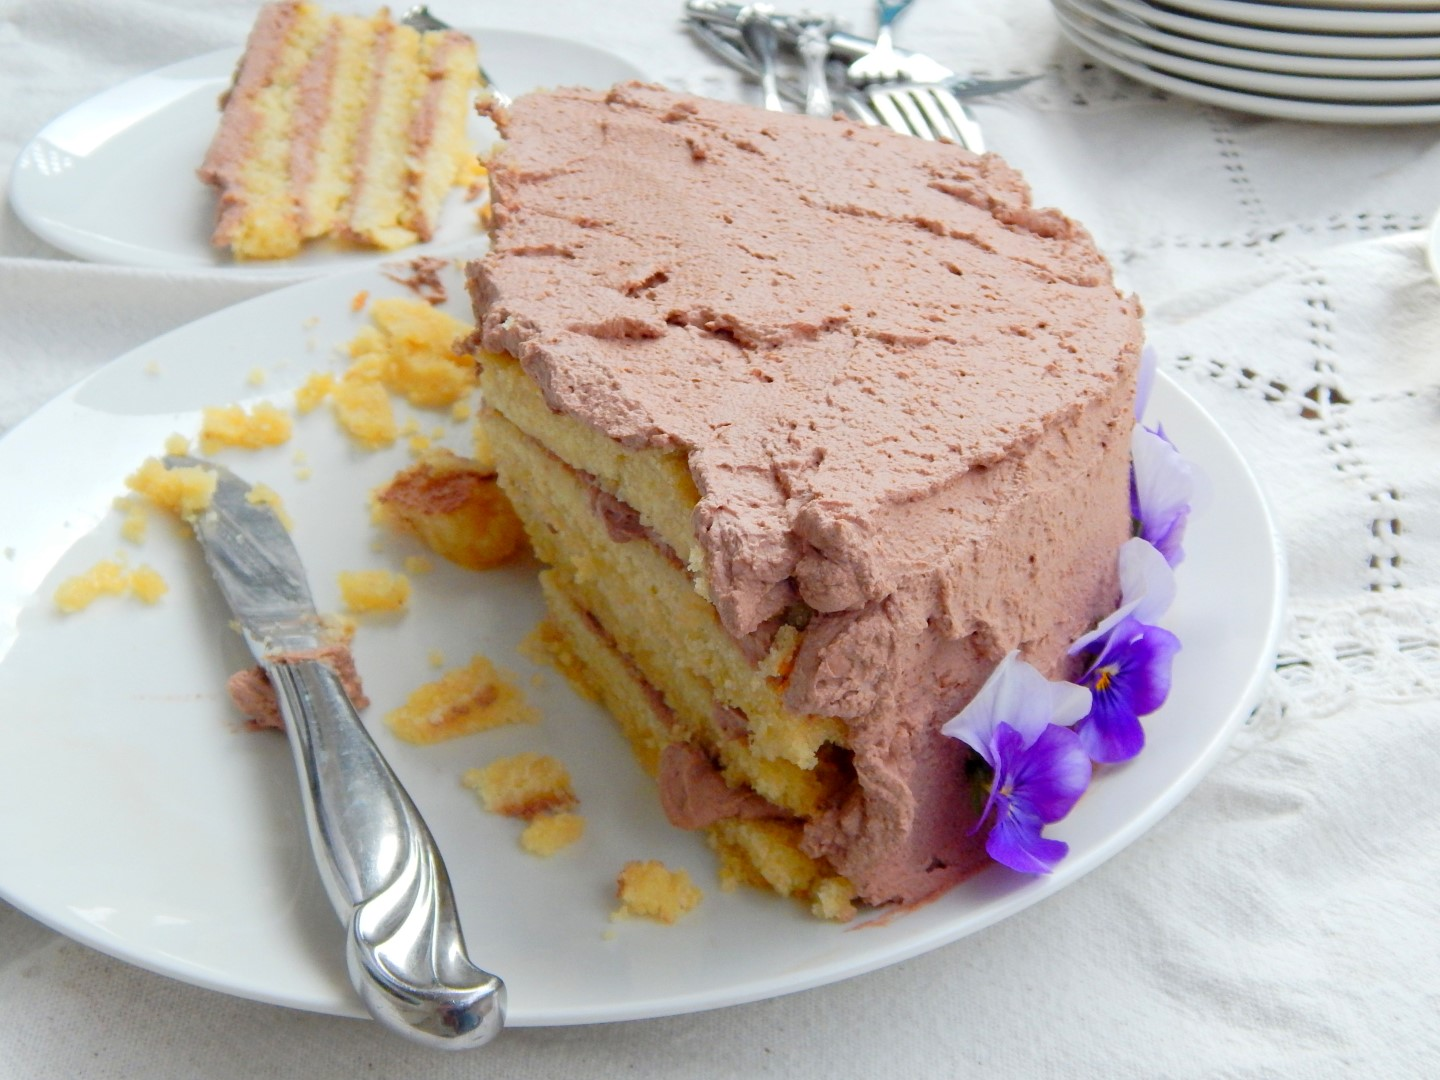 Half eaten layer cake with chocolate frosting.